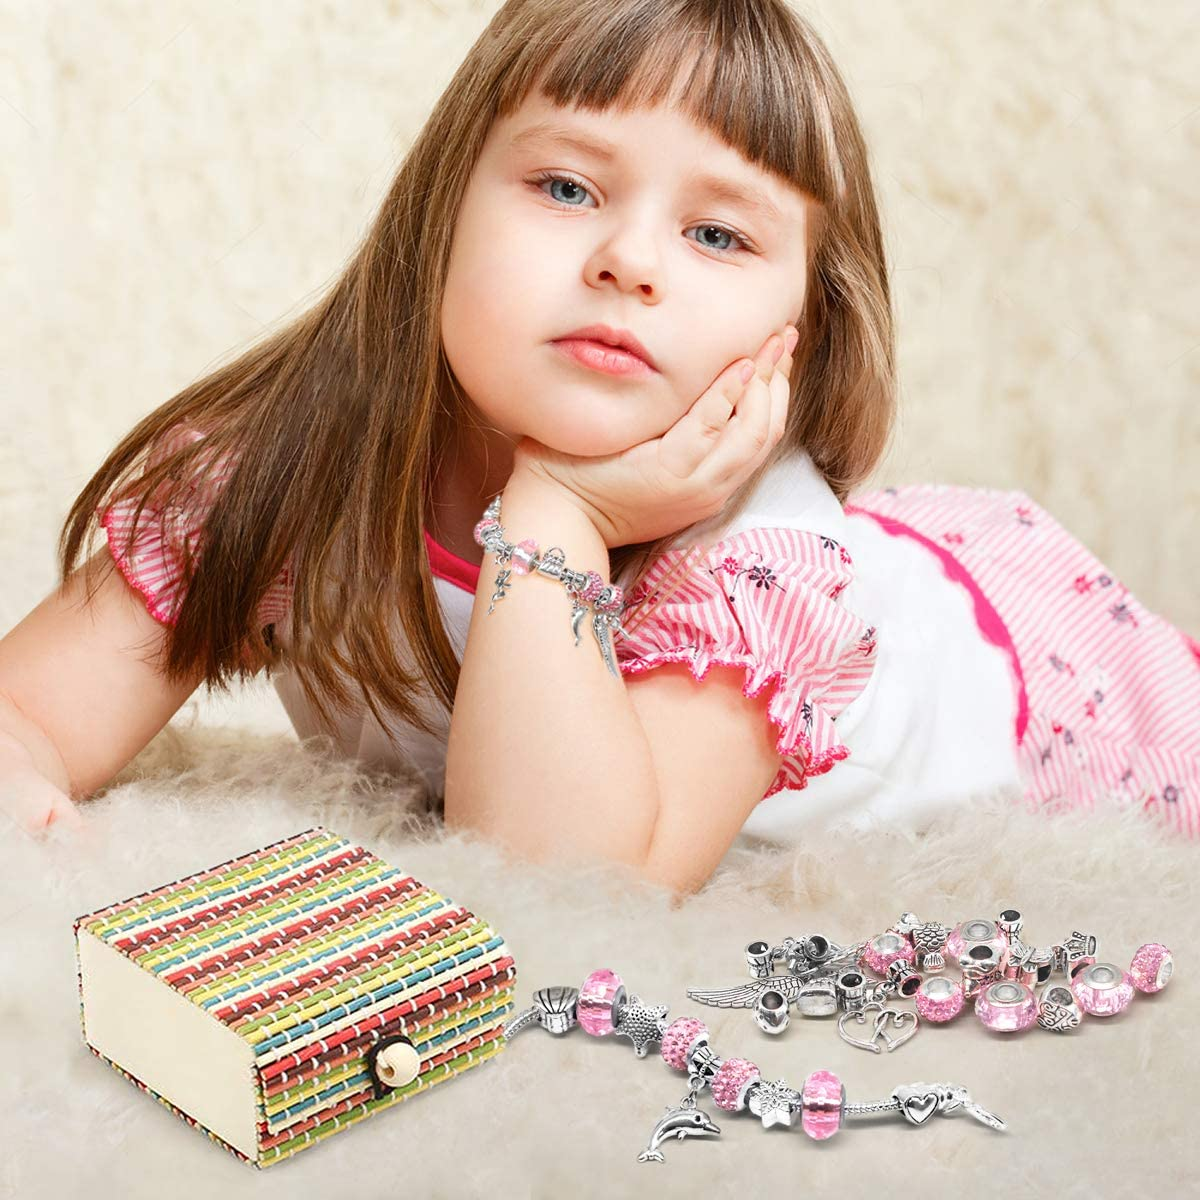 DIY Silver Plated Bead Snake Chain Jewelry Bracelet BIIB Girls Charm Bracelet Making Set Nice Gifts for Girls 3 Silver Chains Girls Jewellery Making Kits for Kids Present For 8-12 Year Old Girl